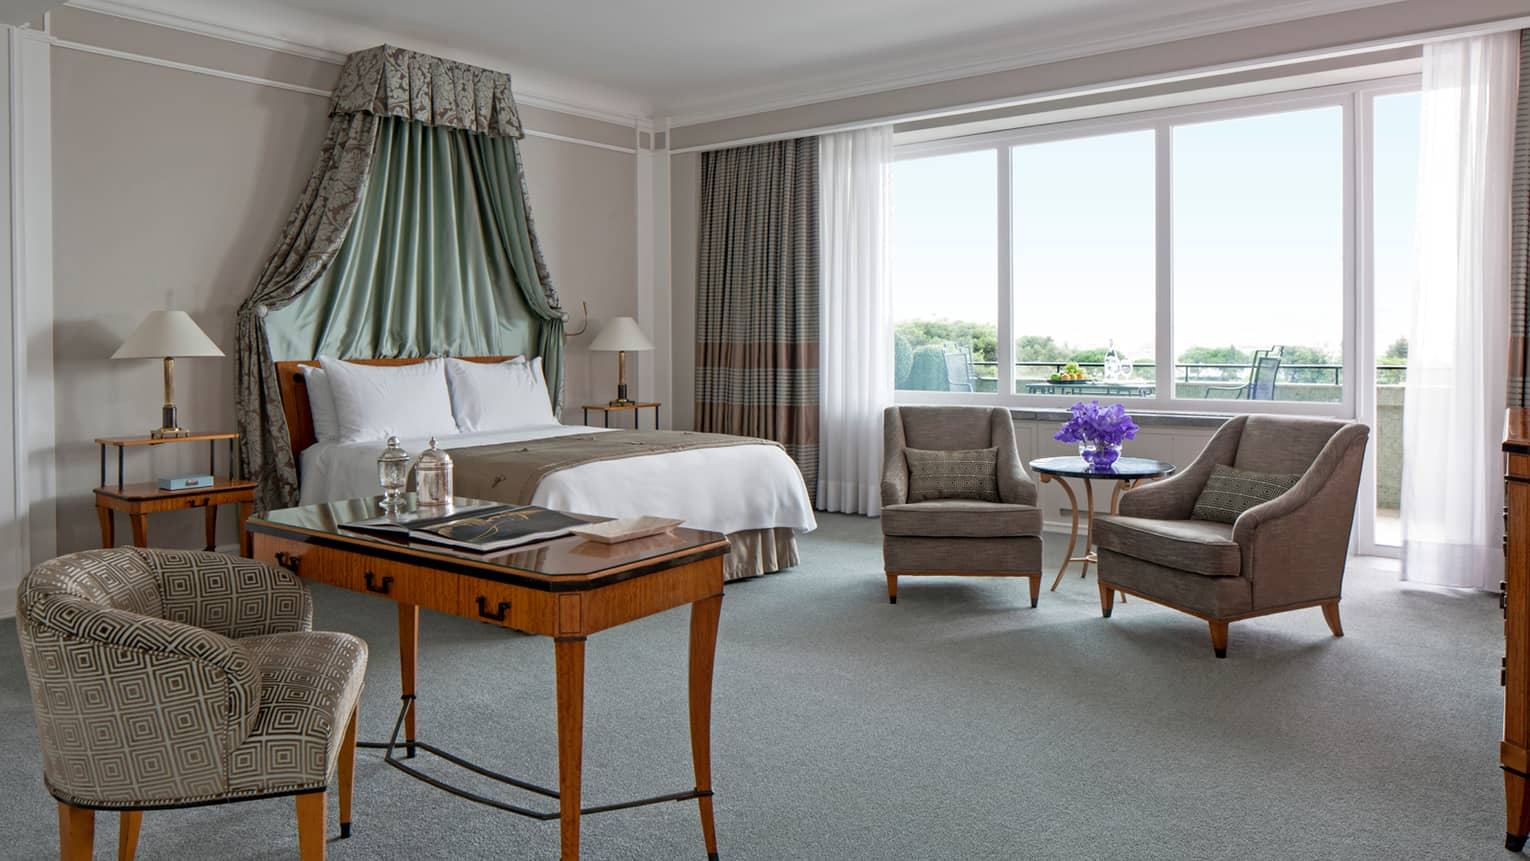 Central One-Bedroom Suite large sunny bedroom, bed with green ruffle canopy, writing desk and chair, window